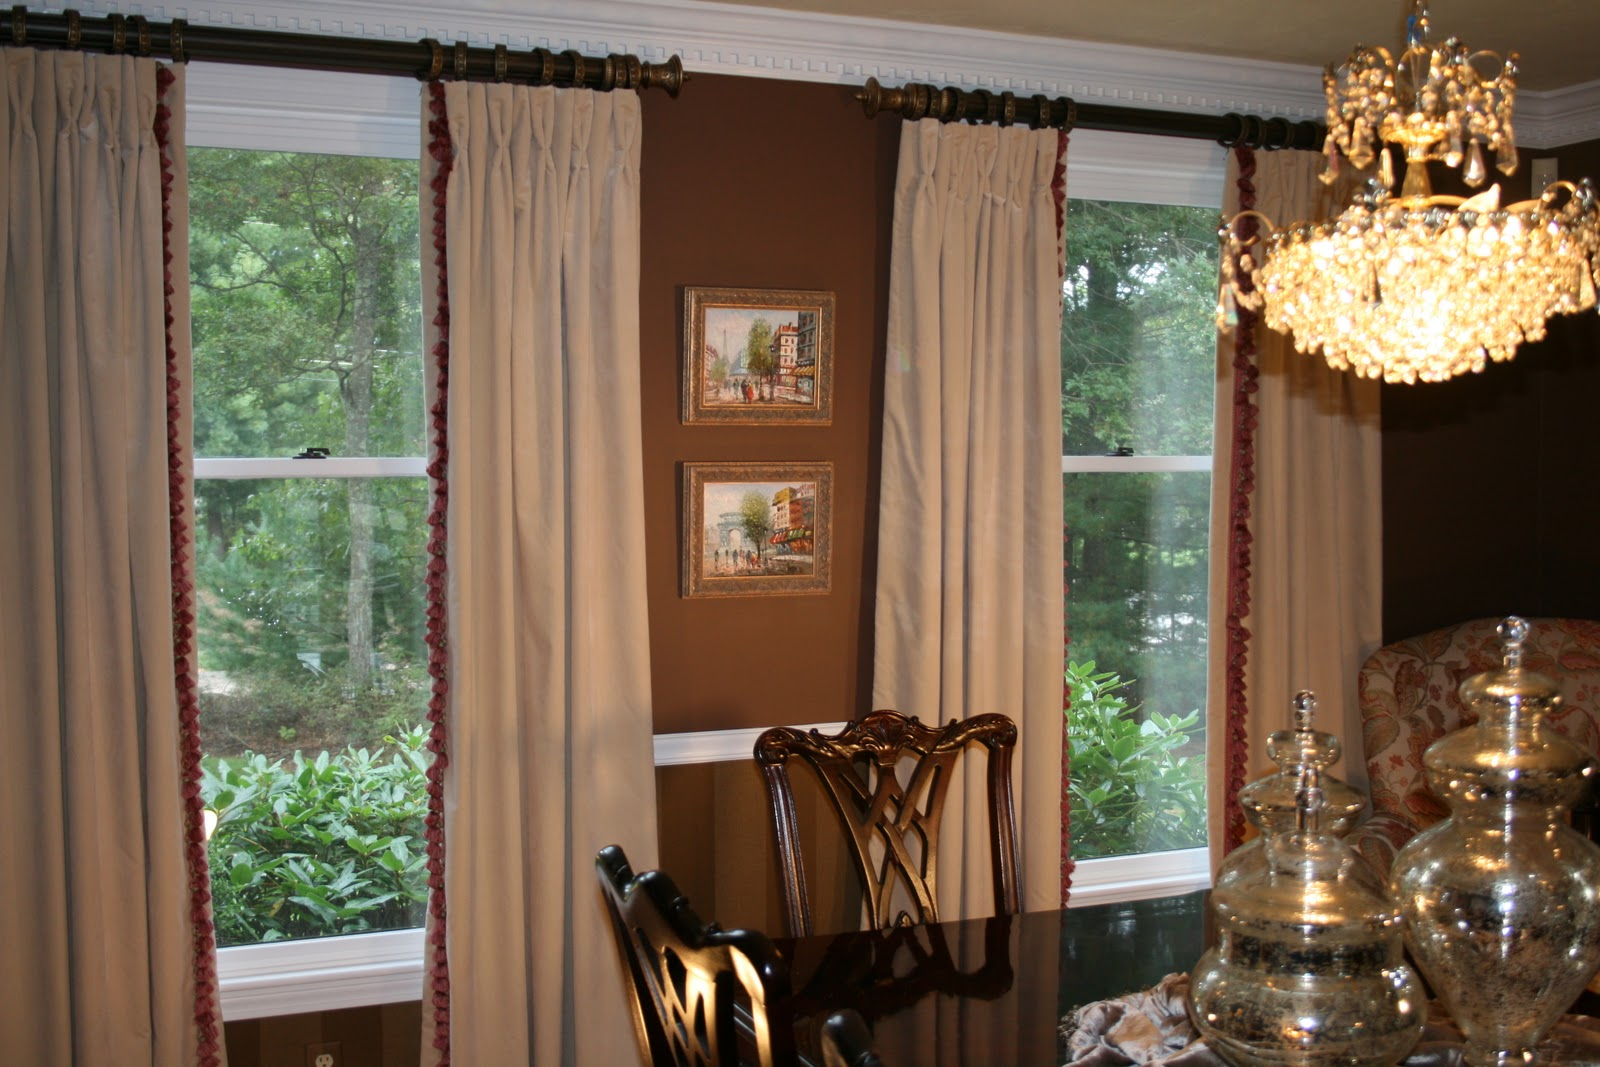 Design notes redecorating dining room window treatments 7 for Dining room window treatments